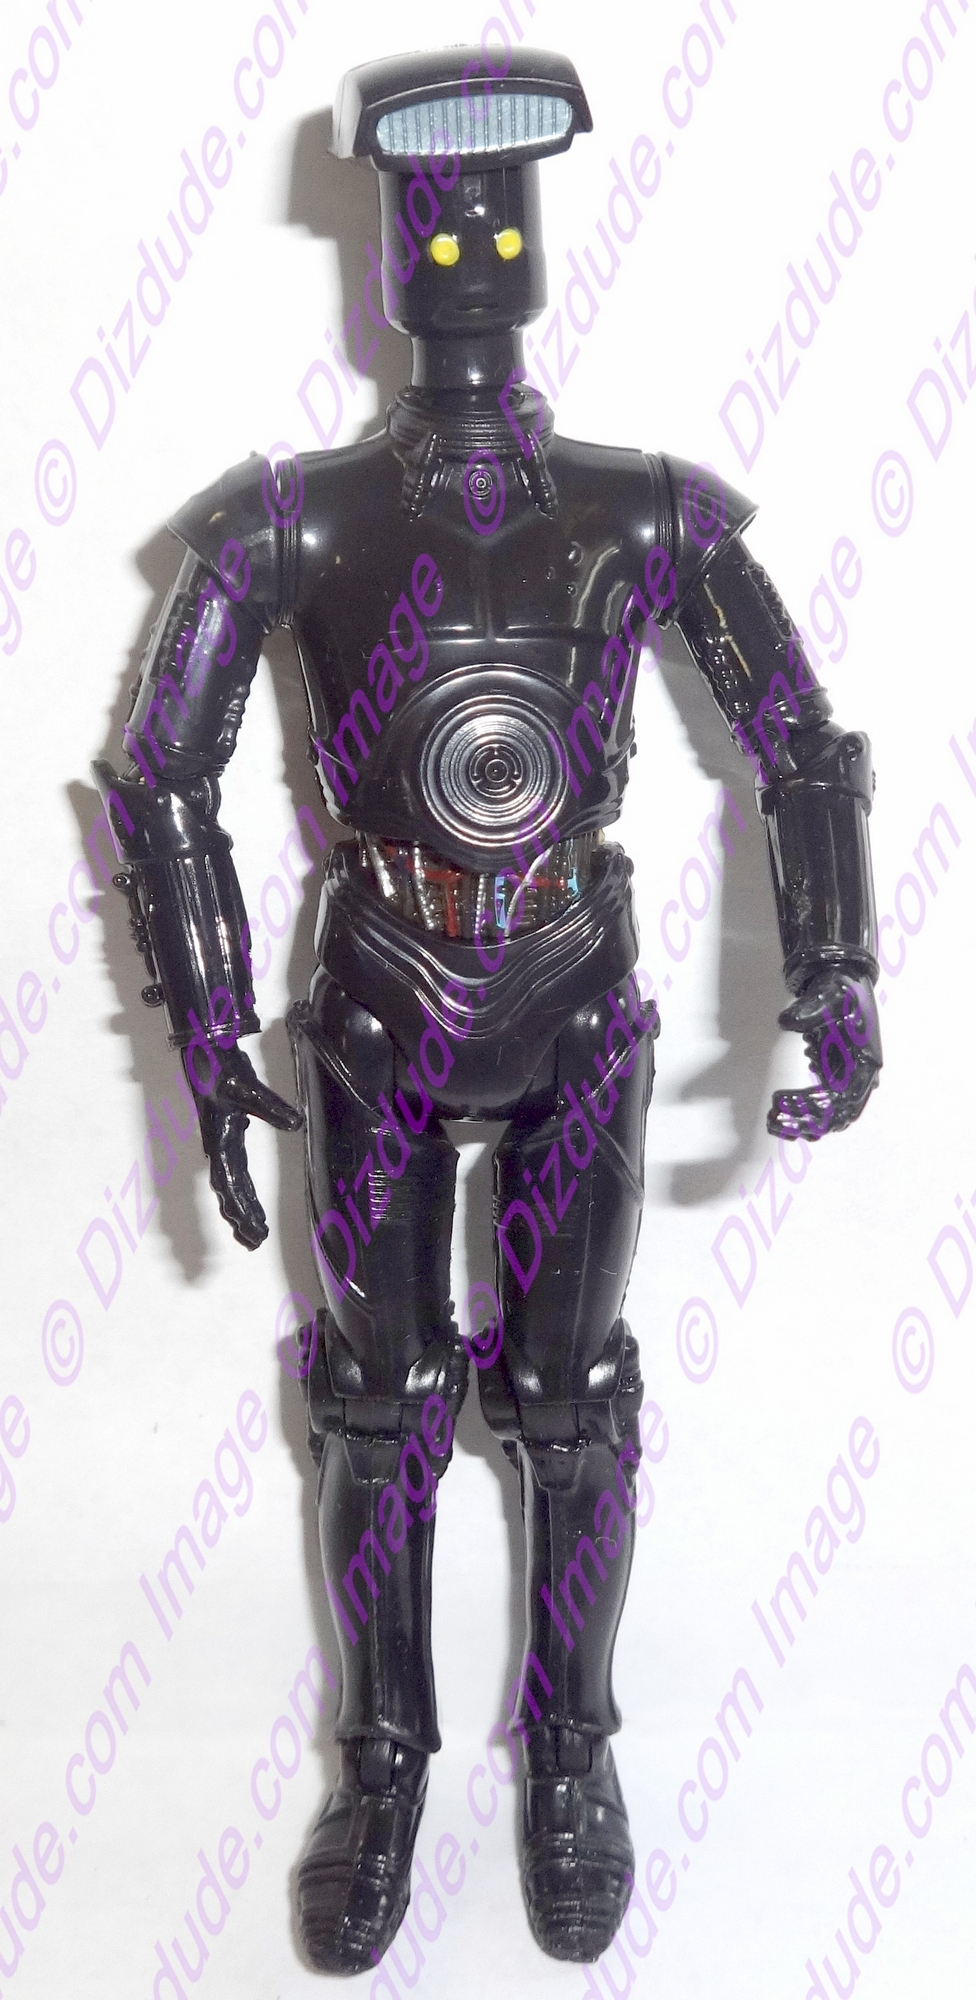 Black Vender Protocol Droid from Disney Star Wars Build-A-Droid Factory